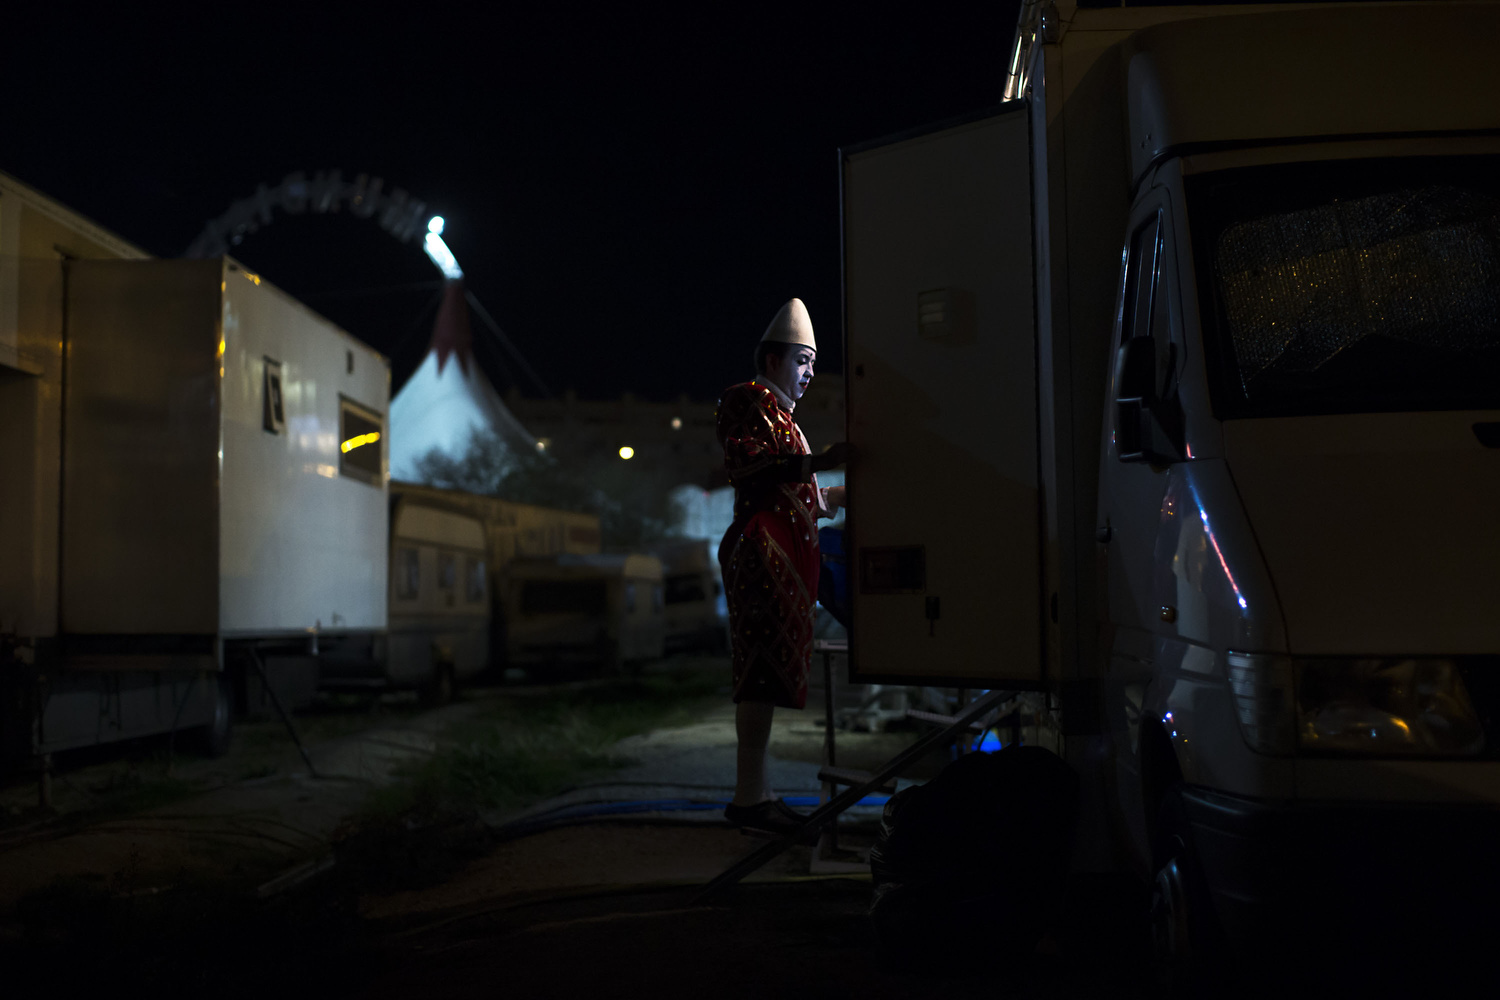 "Clown  Juanjo  Leon  enters to his  caravan-truck  at  Gran Circo Mundial circus' backstage  dressed up as "" Carablanca "" after an evening performance on November 27, 2015 in Madrid, Spain. His brother Dani adapted this truck into the caravan where he lives. The family travels together with this truck pulling their parents' caravan.  Gran Circo Mundial  is a 40 years-old Spanish  circus  where  famil y lifes and stories have mixed together across the time. From the  trapeze  artists of the  Pyongyang National Circus  to the  Rampin  family descendants,  clown s,  magician s or aerial  permormer s share the  stage  and part of their private lifes. Their show was running inMadrid in Autumn 2015."